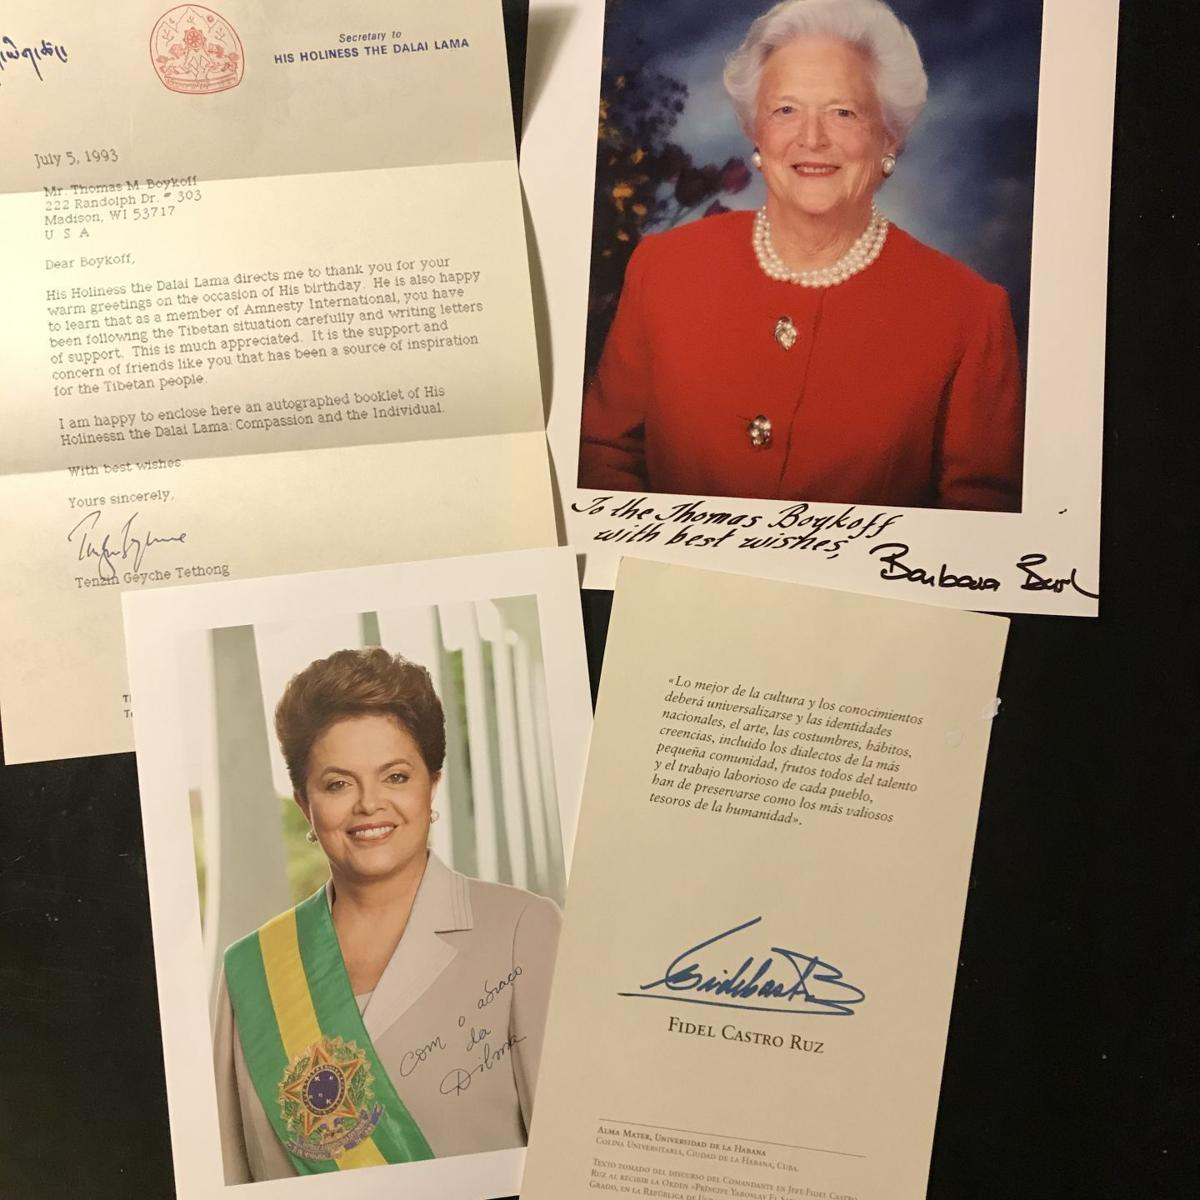 Letters from dignitaries